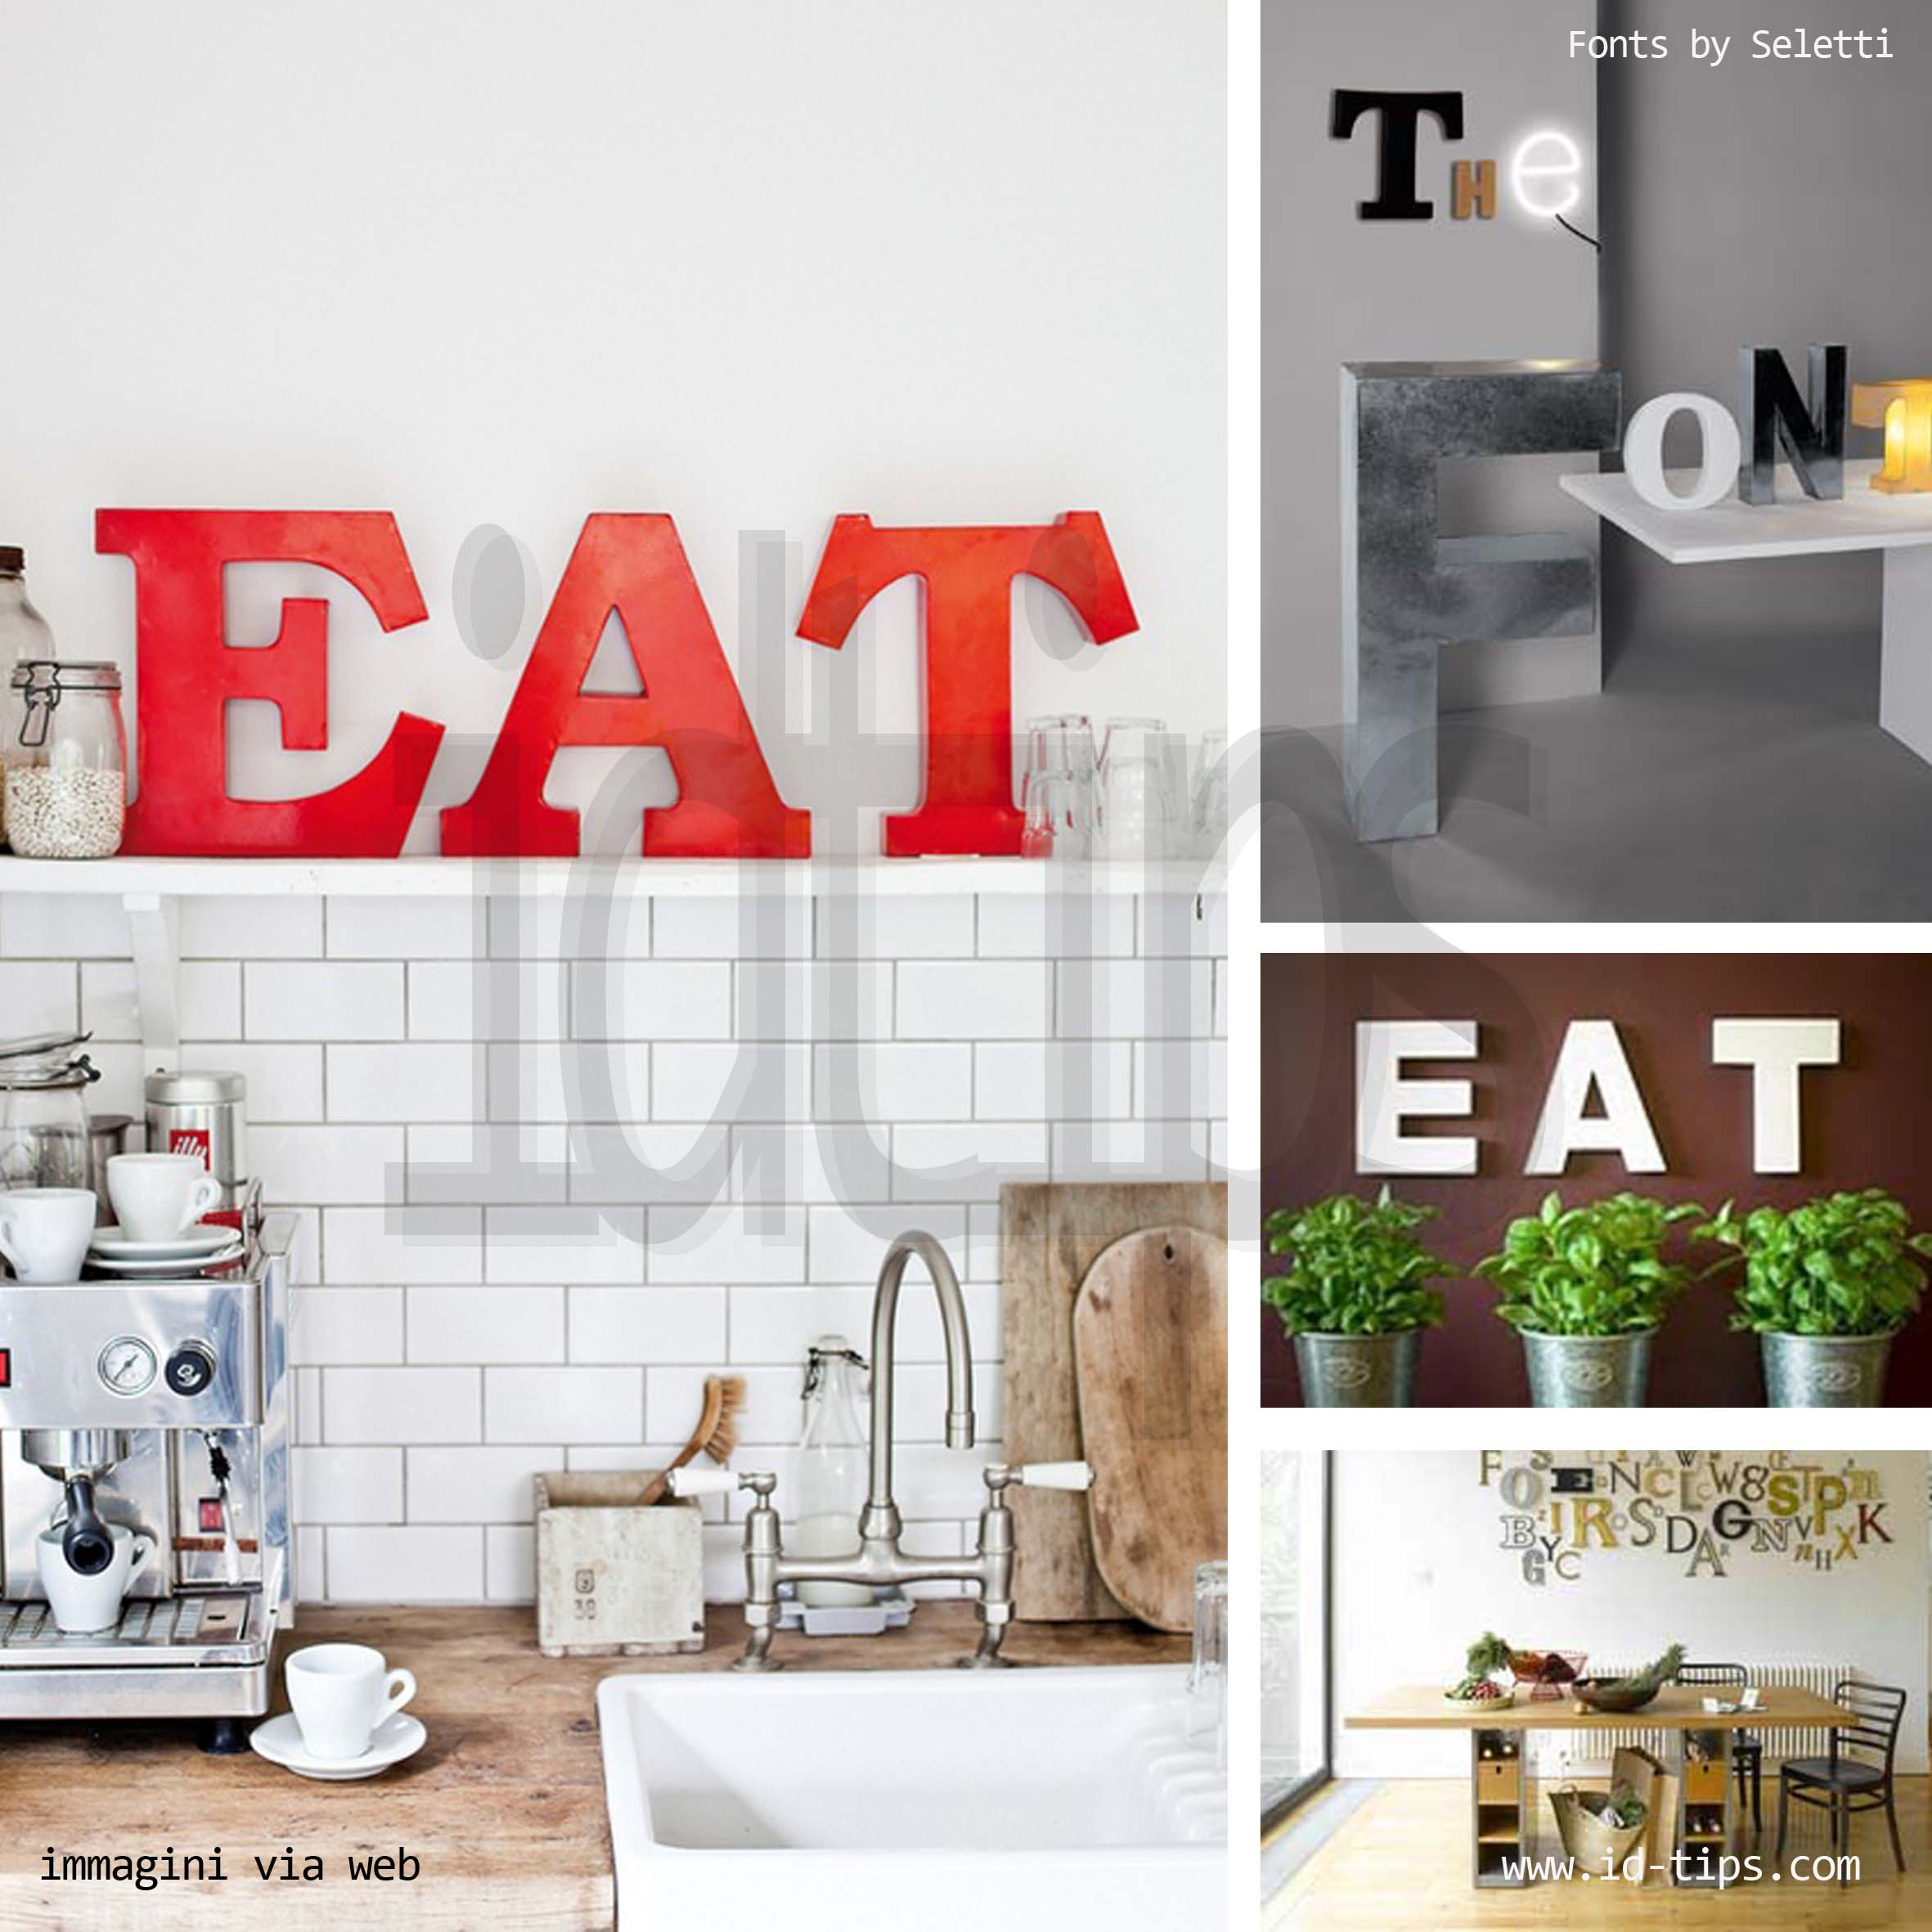 A b c lettering id tips interior design tips blog - Quadri da appendere in cucina ...